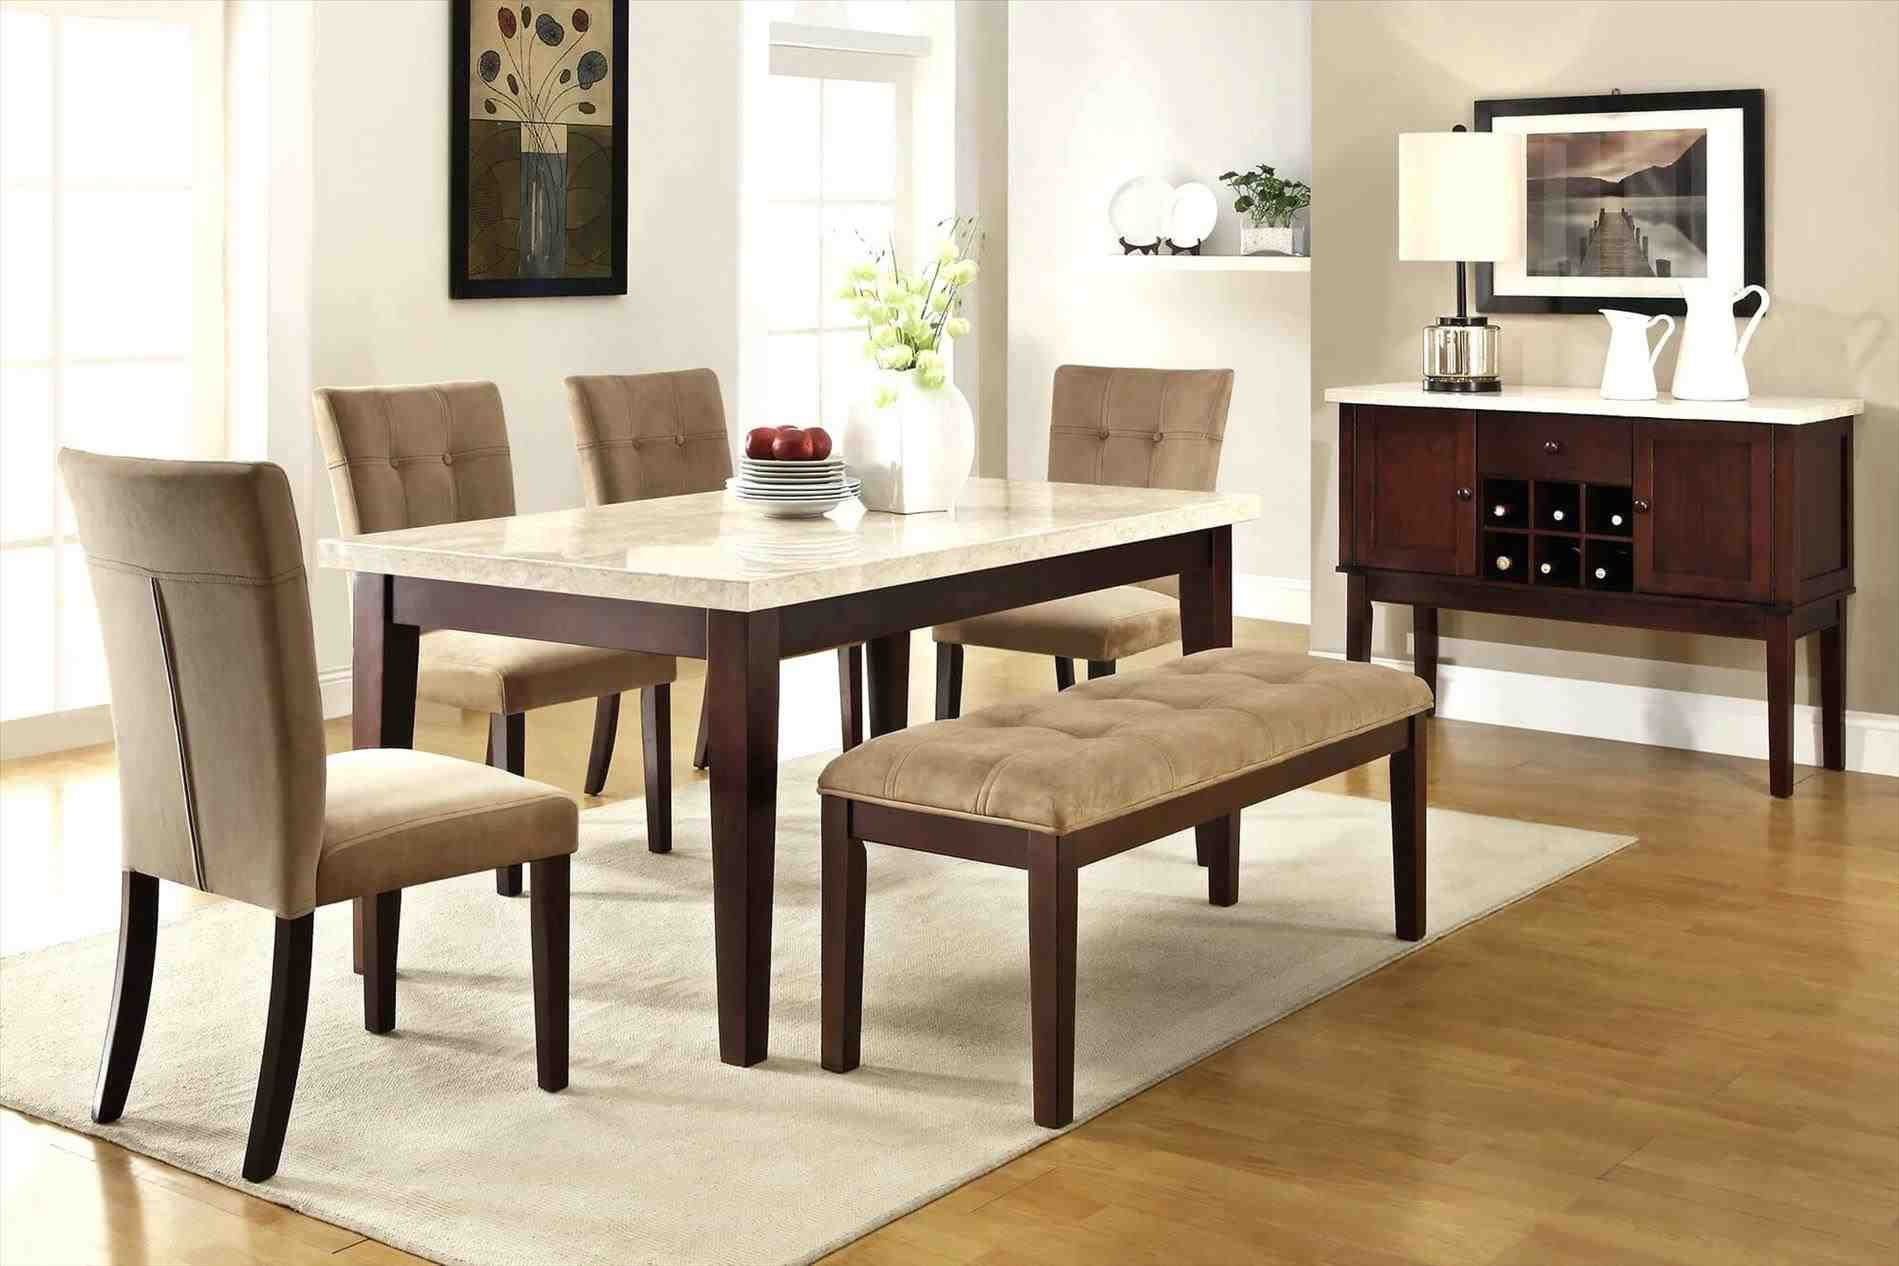 New post dining table bench seat with back